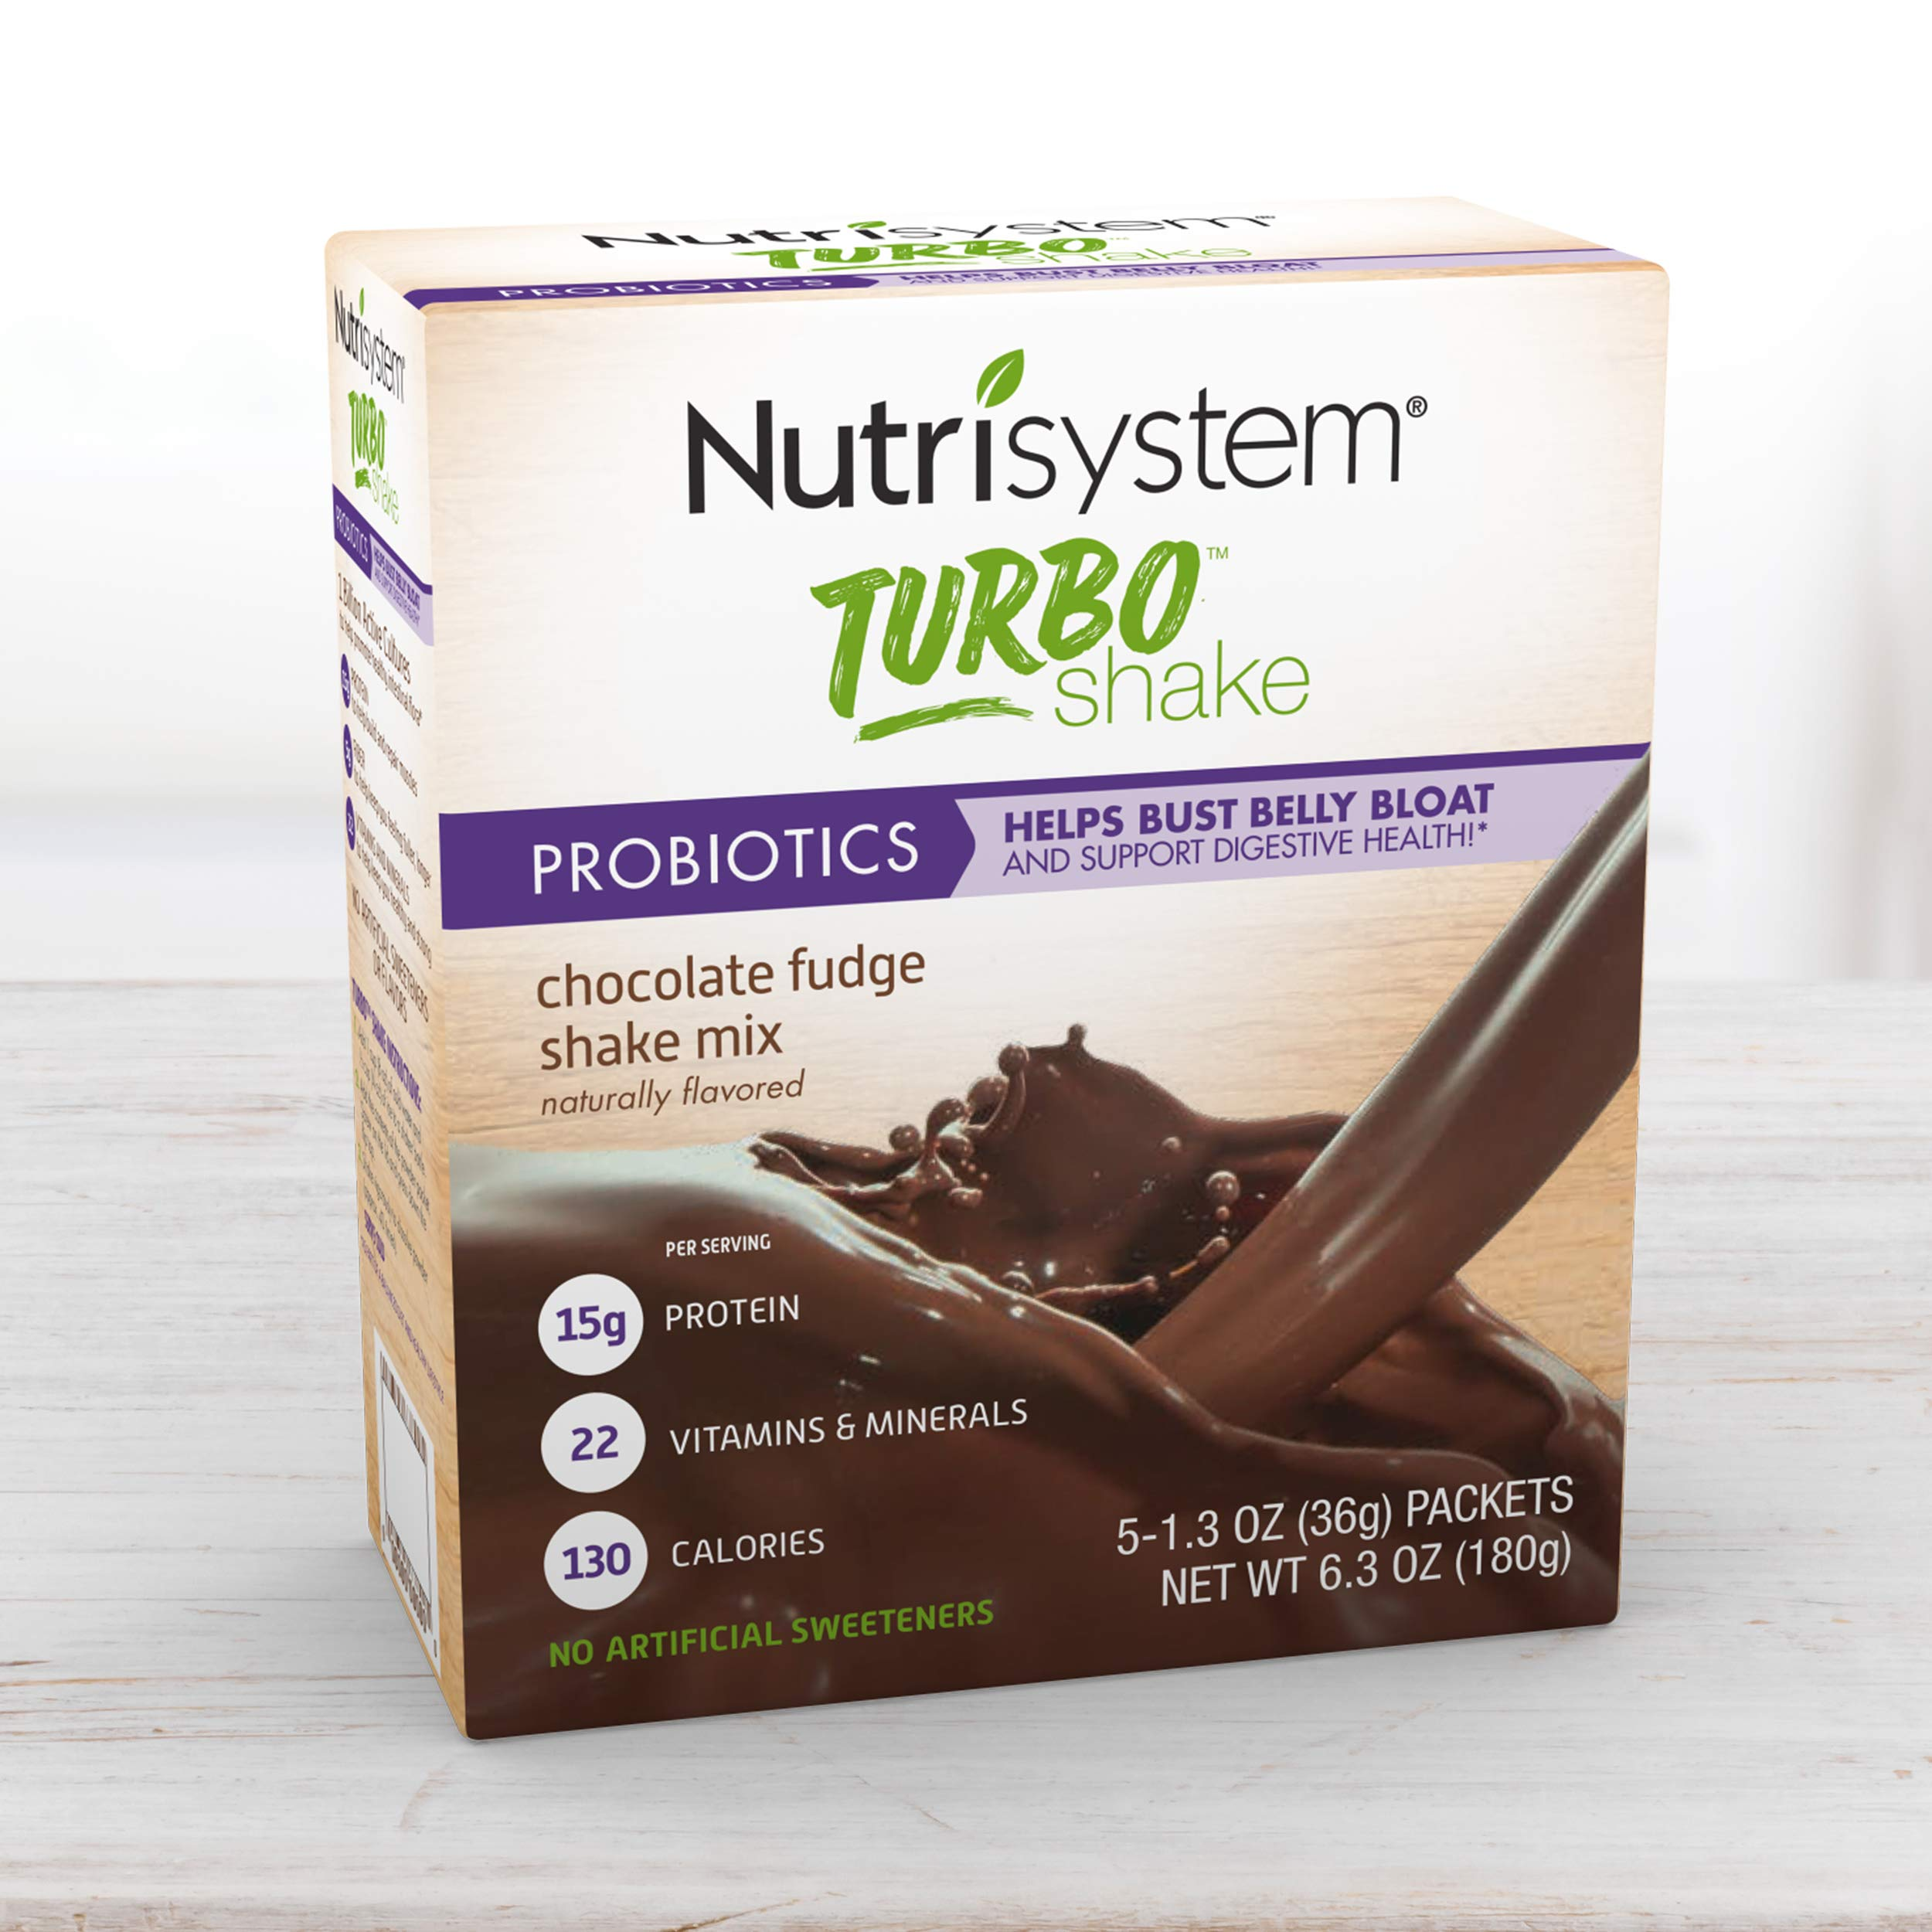 Nutrisystem® Turbo Shake Chocolate Fudge Probiotic, 20 ct by Nutrisystem